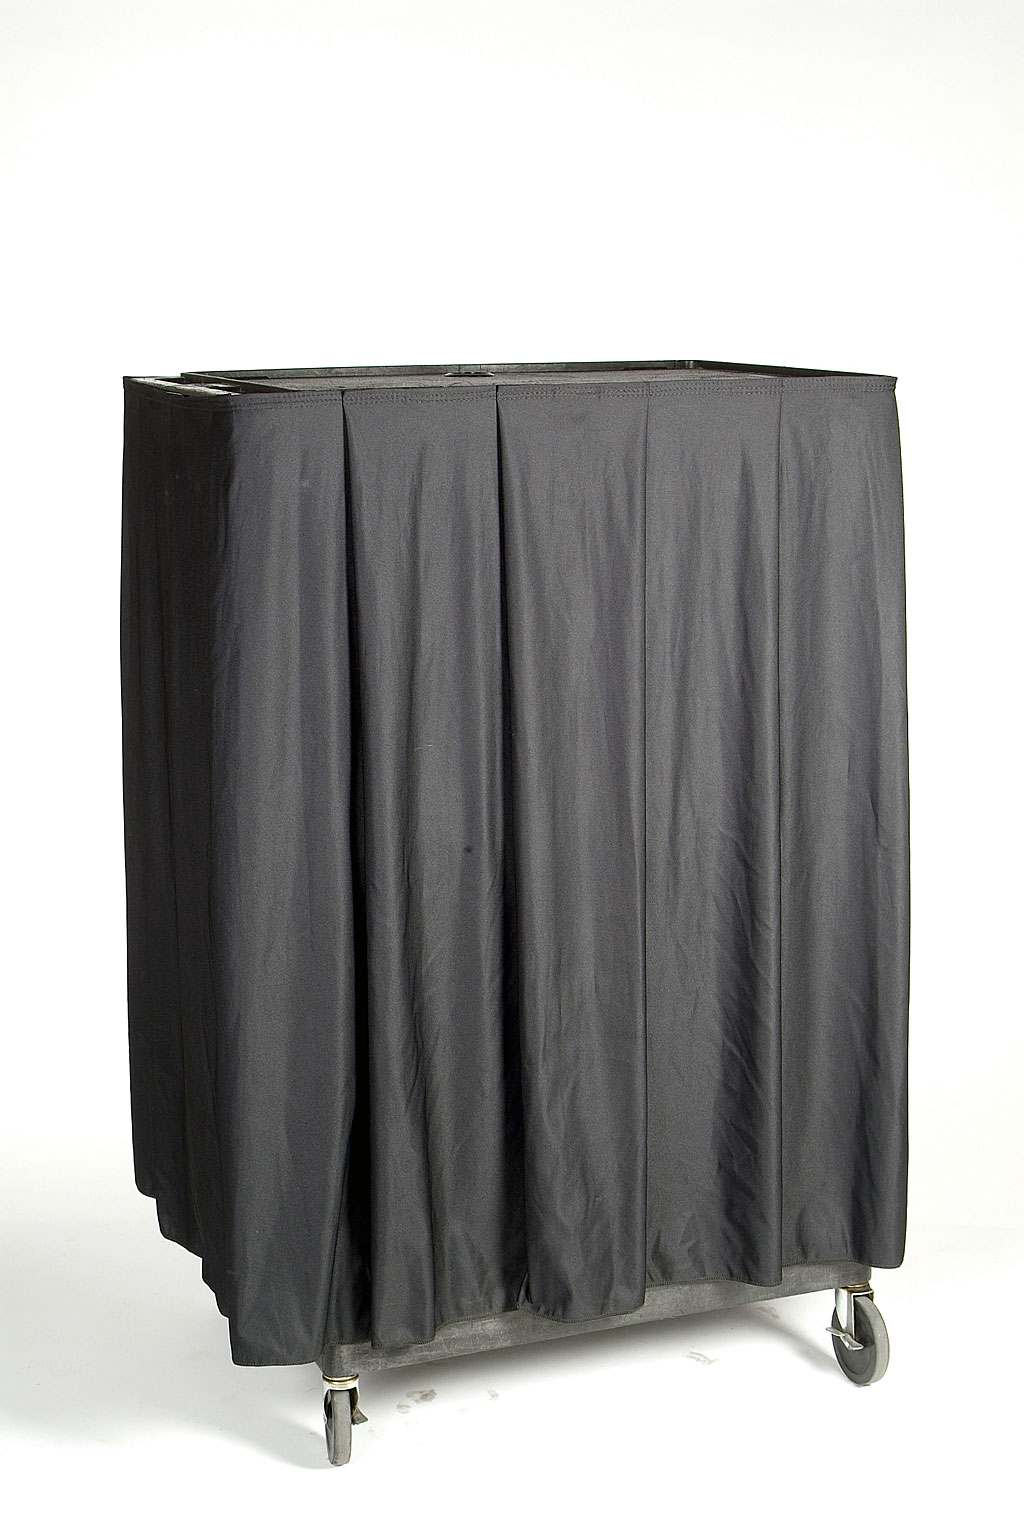 Black Drapery for Projection Cart